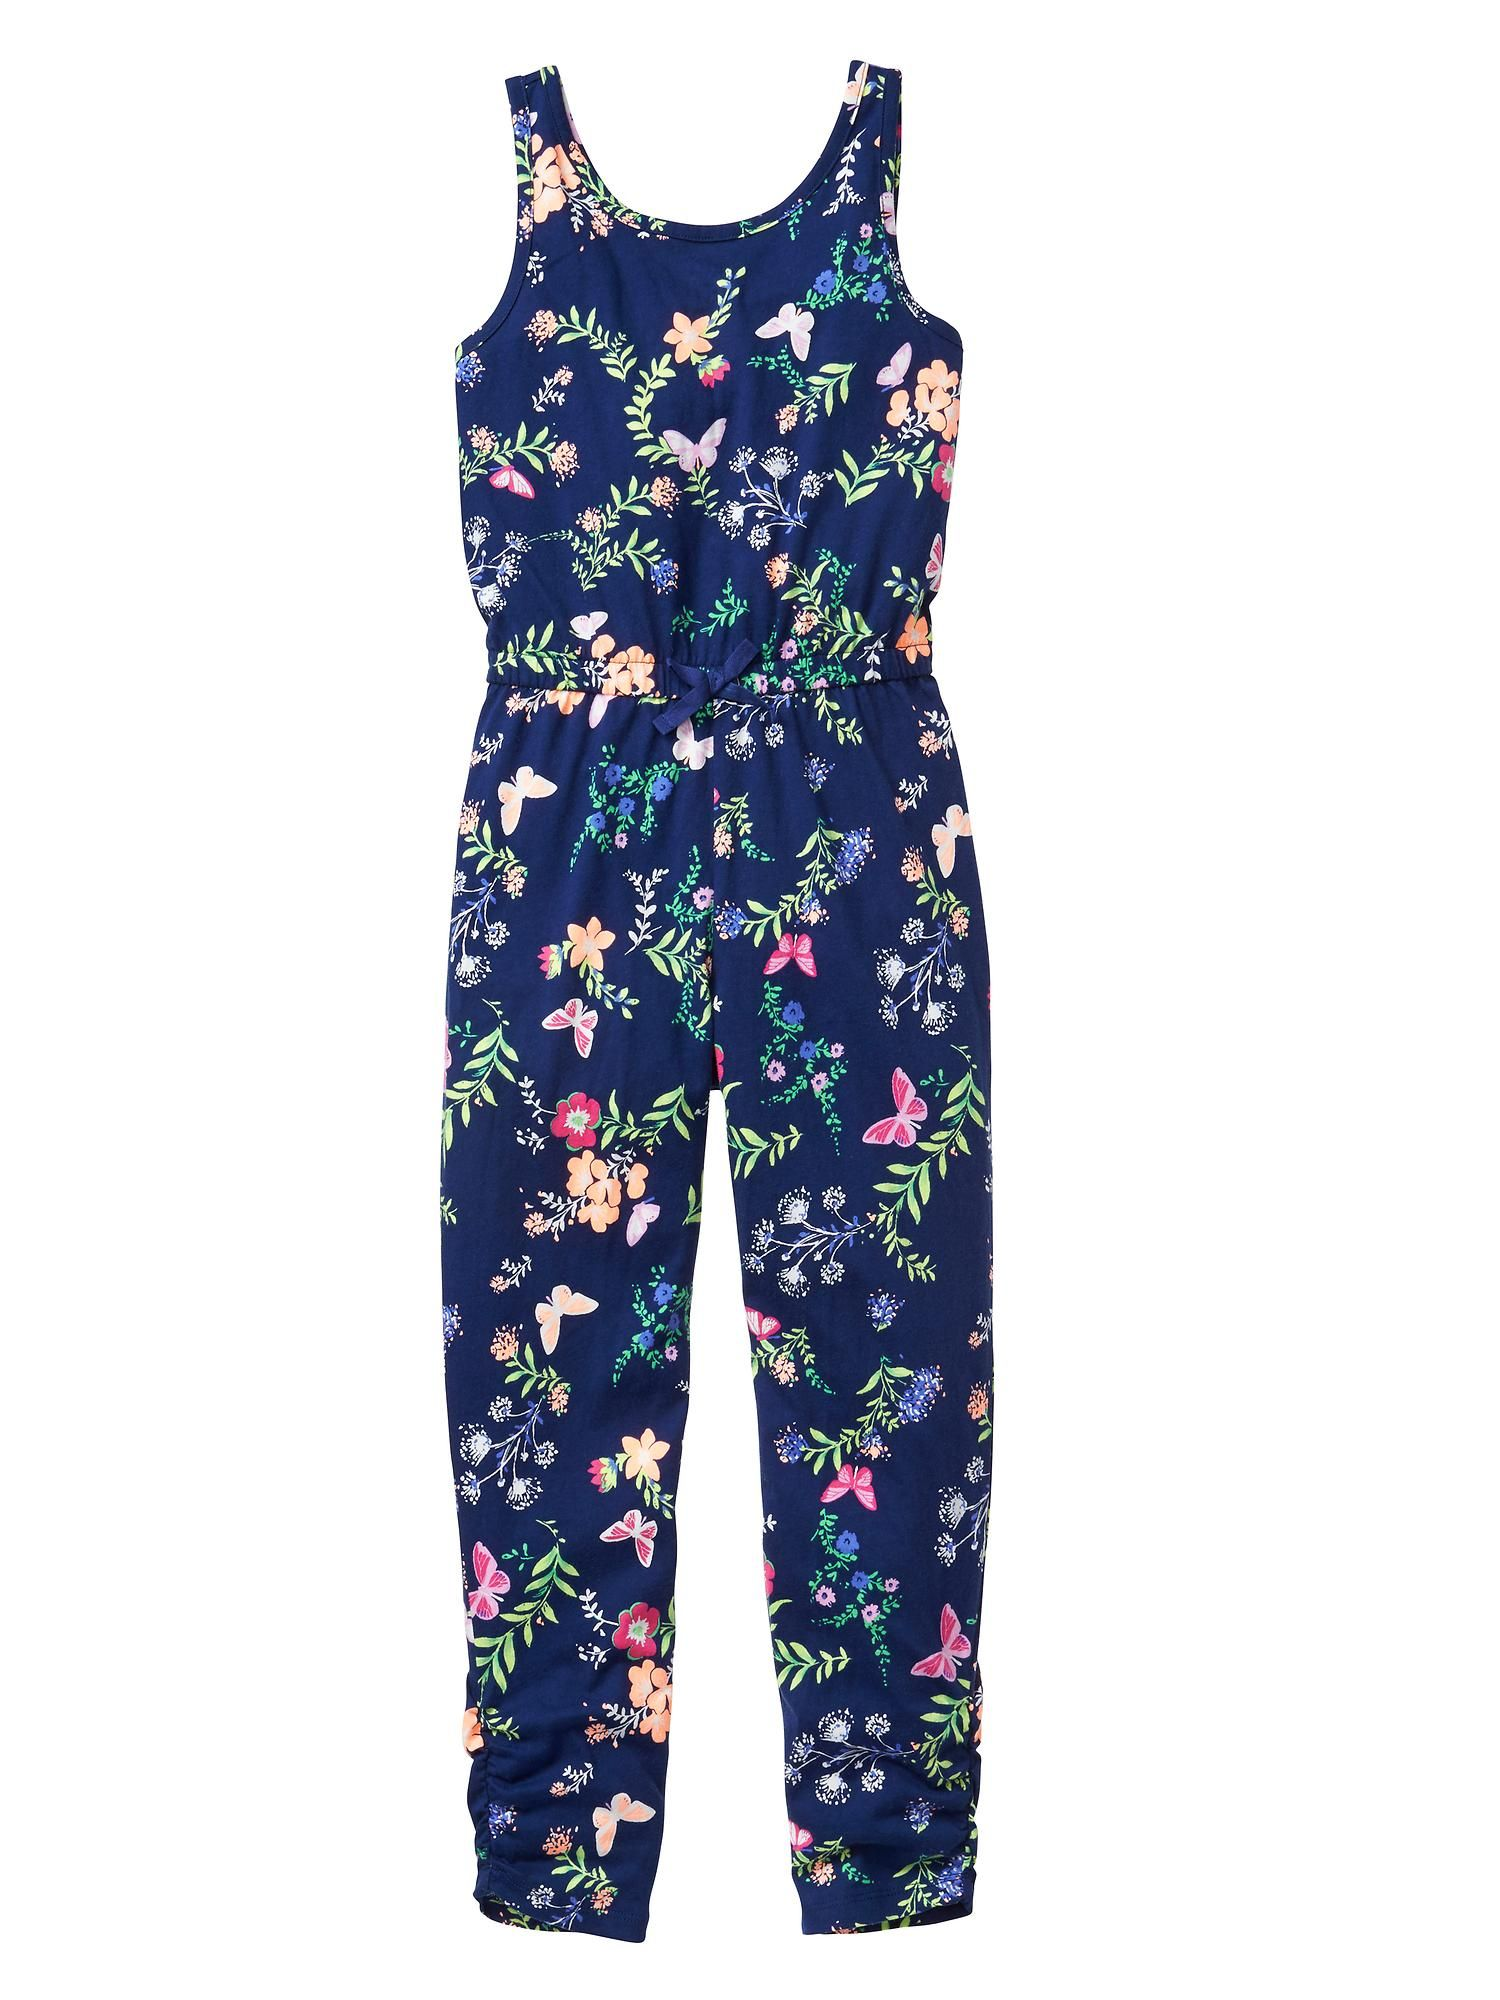 643dc224e9ca Jumpsuit by Gap Factory 4-18 yrs